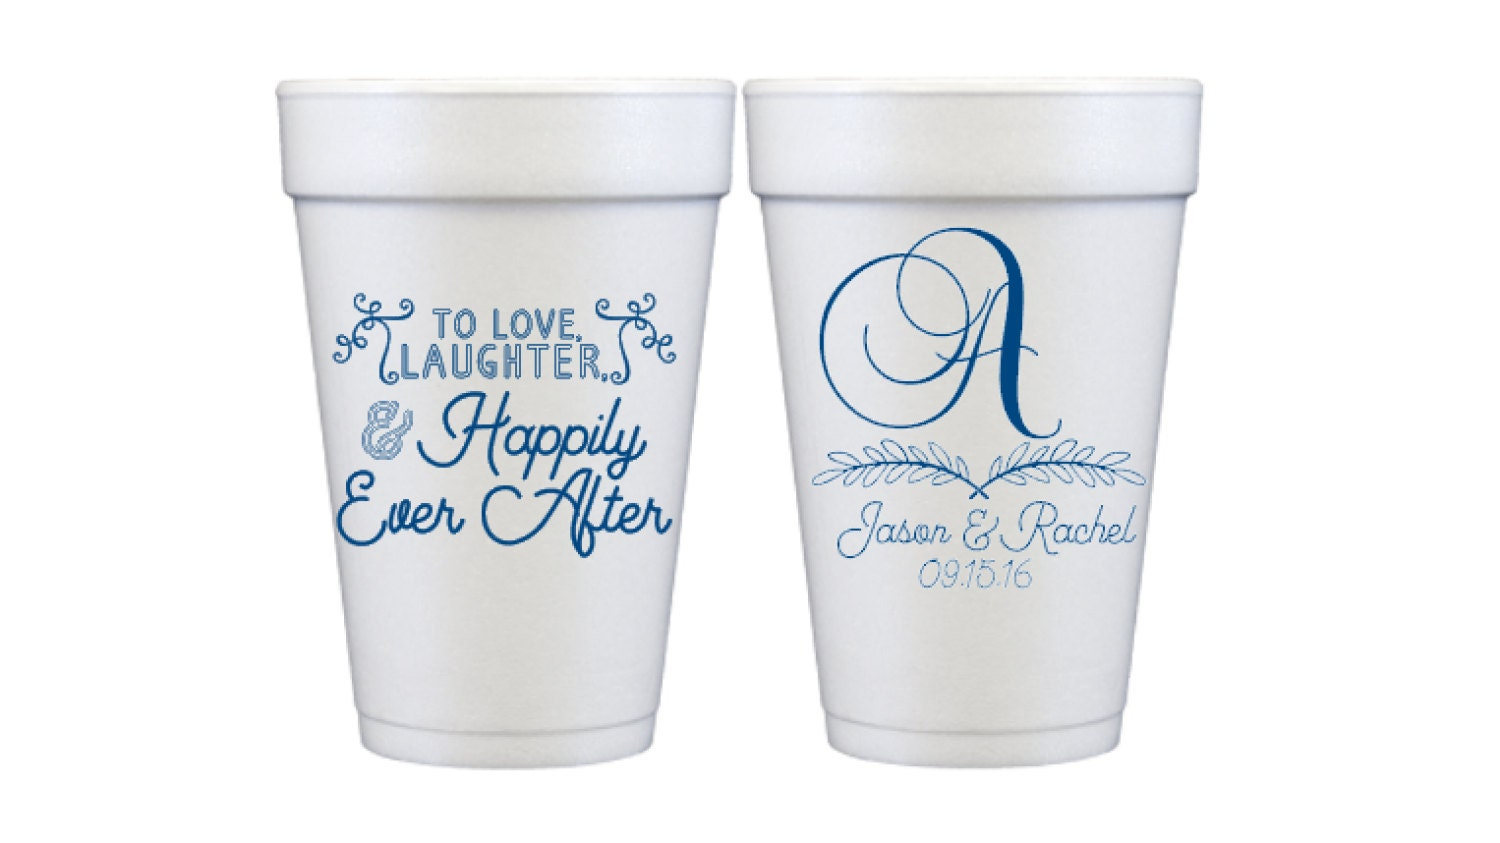 Love Laughter & Happily Ever After Custom Wedding Cup